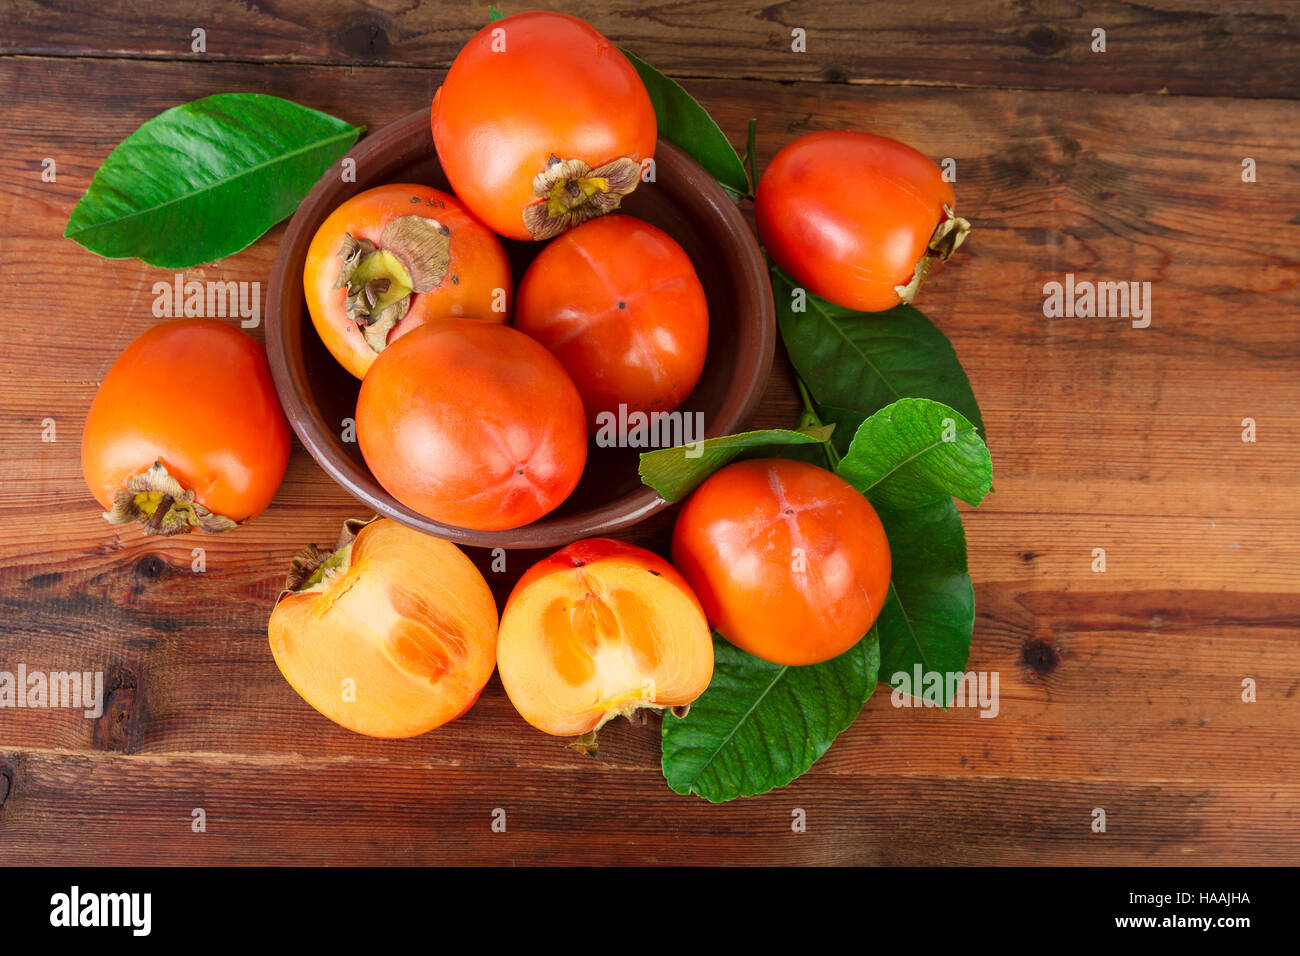 Persimmon fruits rustic background top view - Stock Image